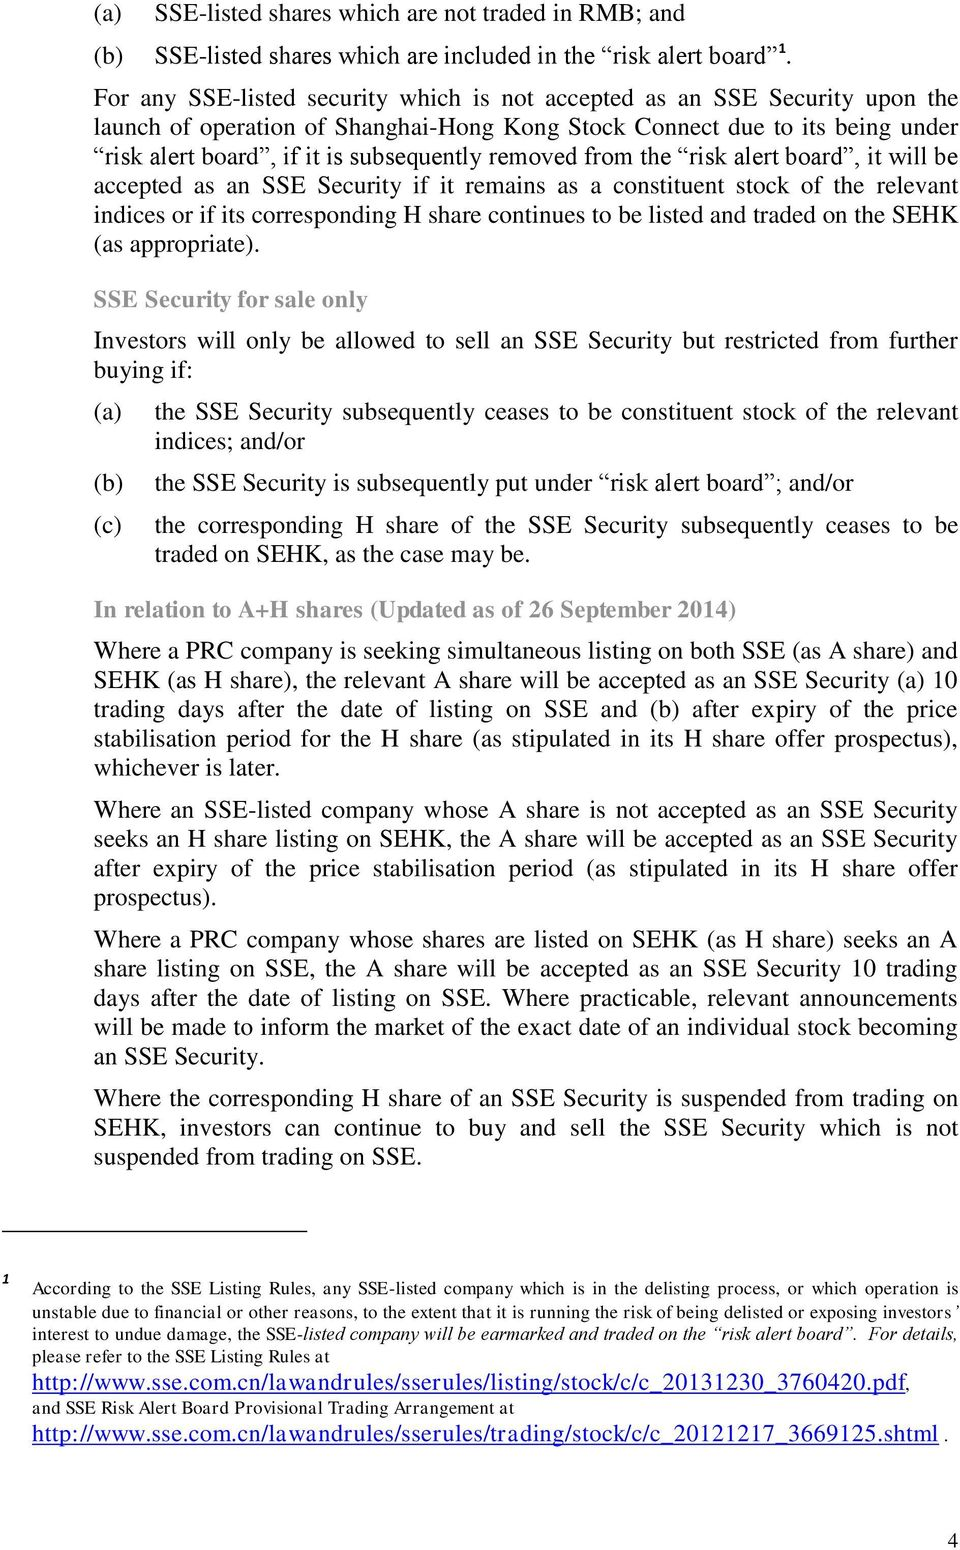 removed from the risk alert board, it will be accepted as an SSE Security if it remains as a constituent stock of the relevant indices or if its corresponding H share continues to be listed and